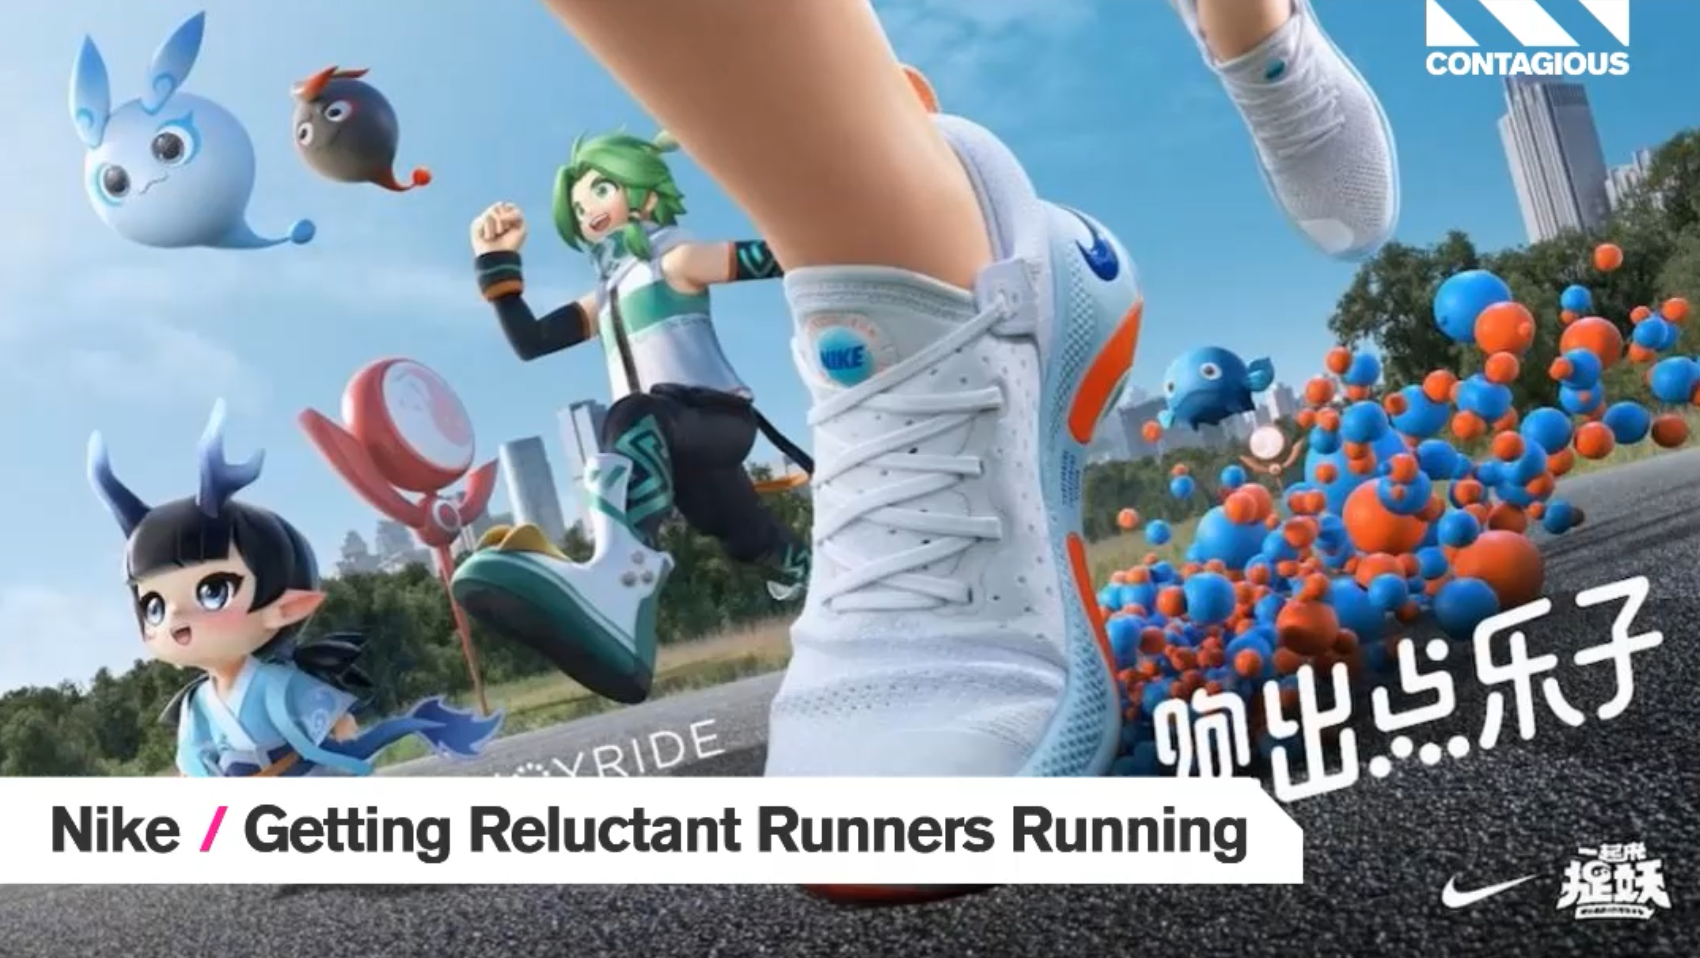 Audiense blog - Nike | Getting Reluctant Runners Running